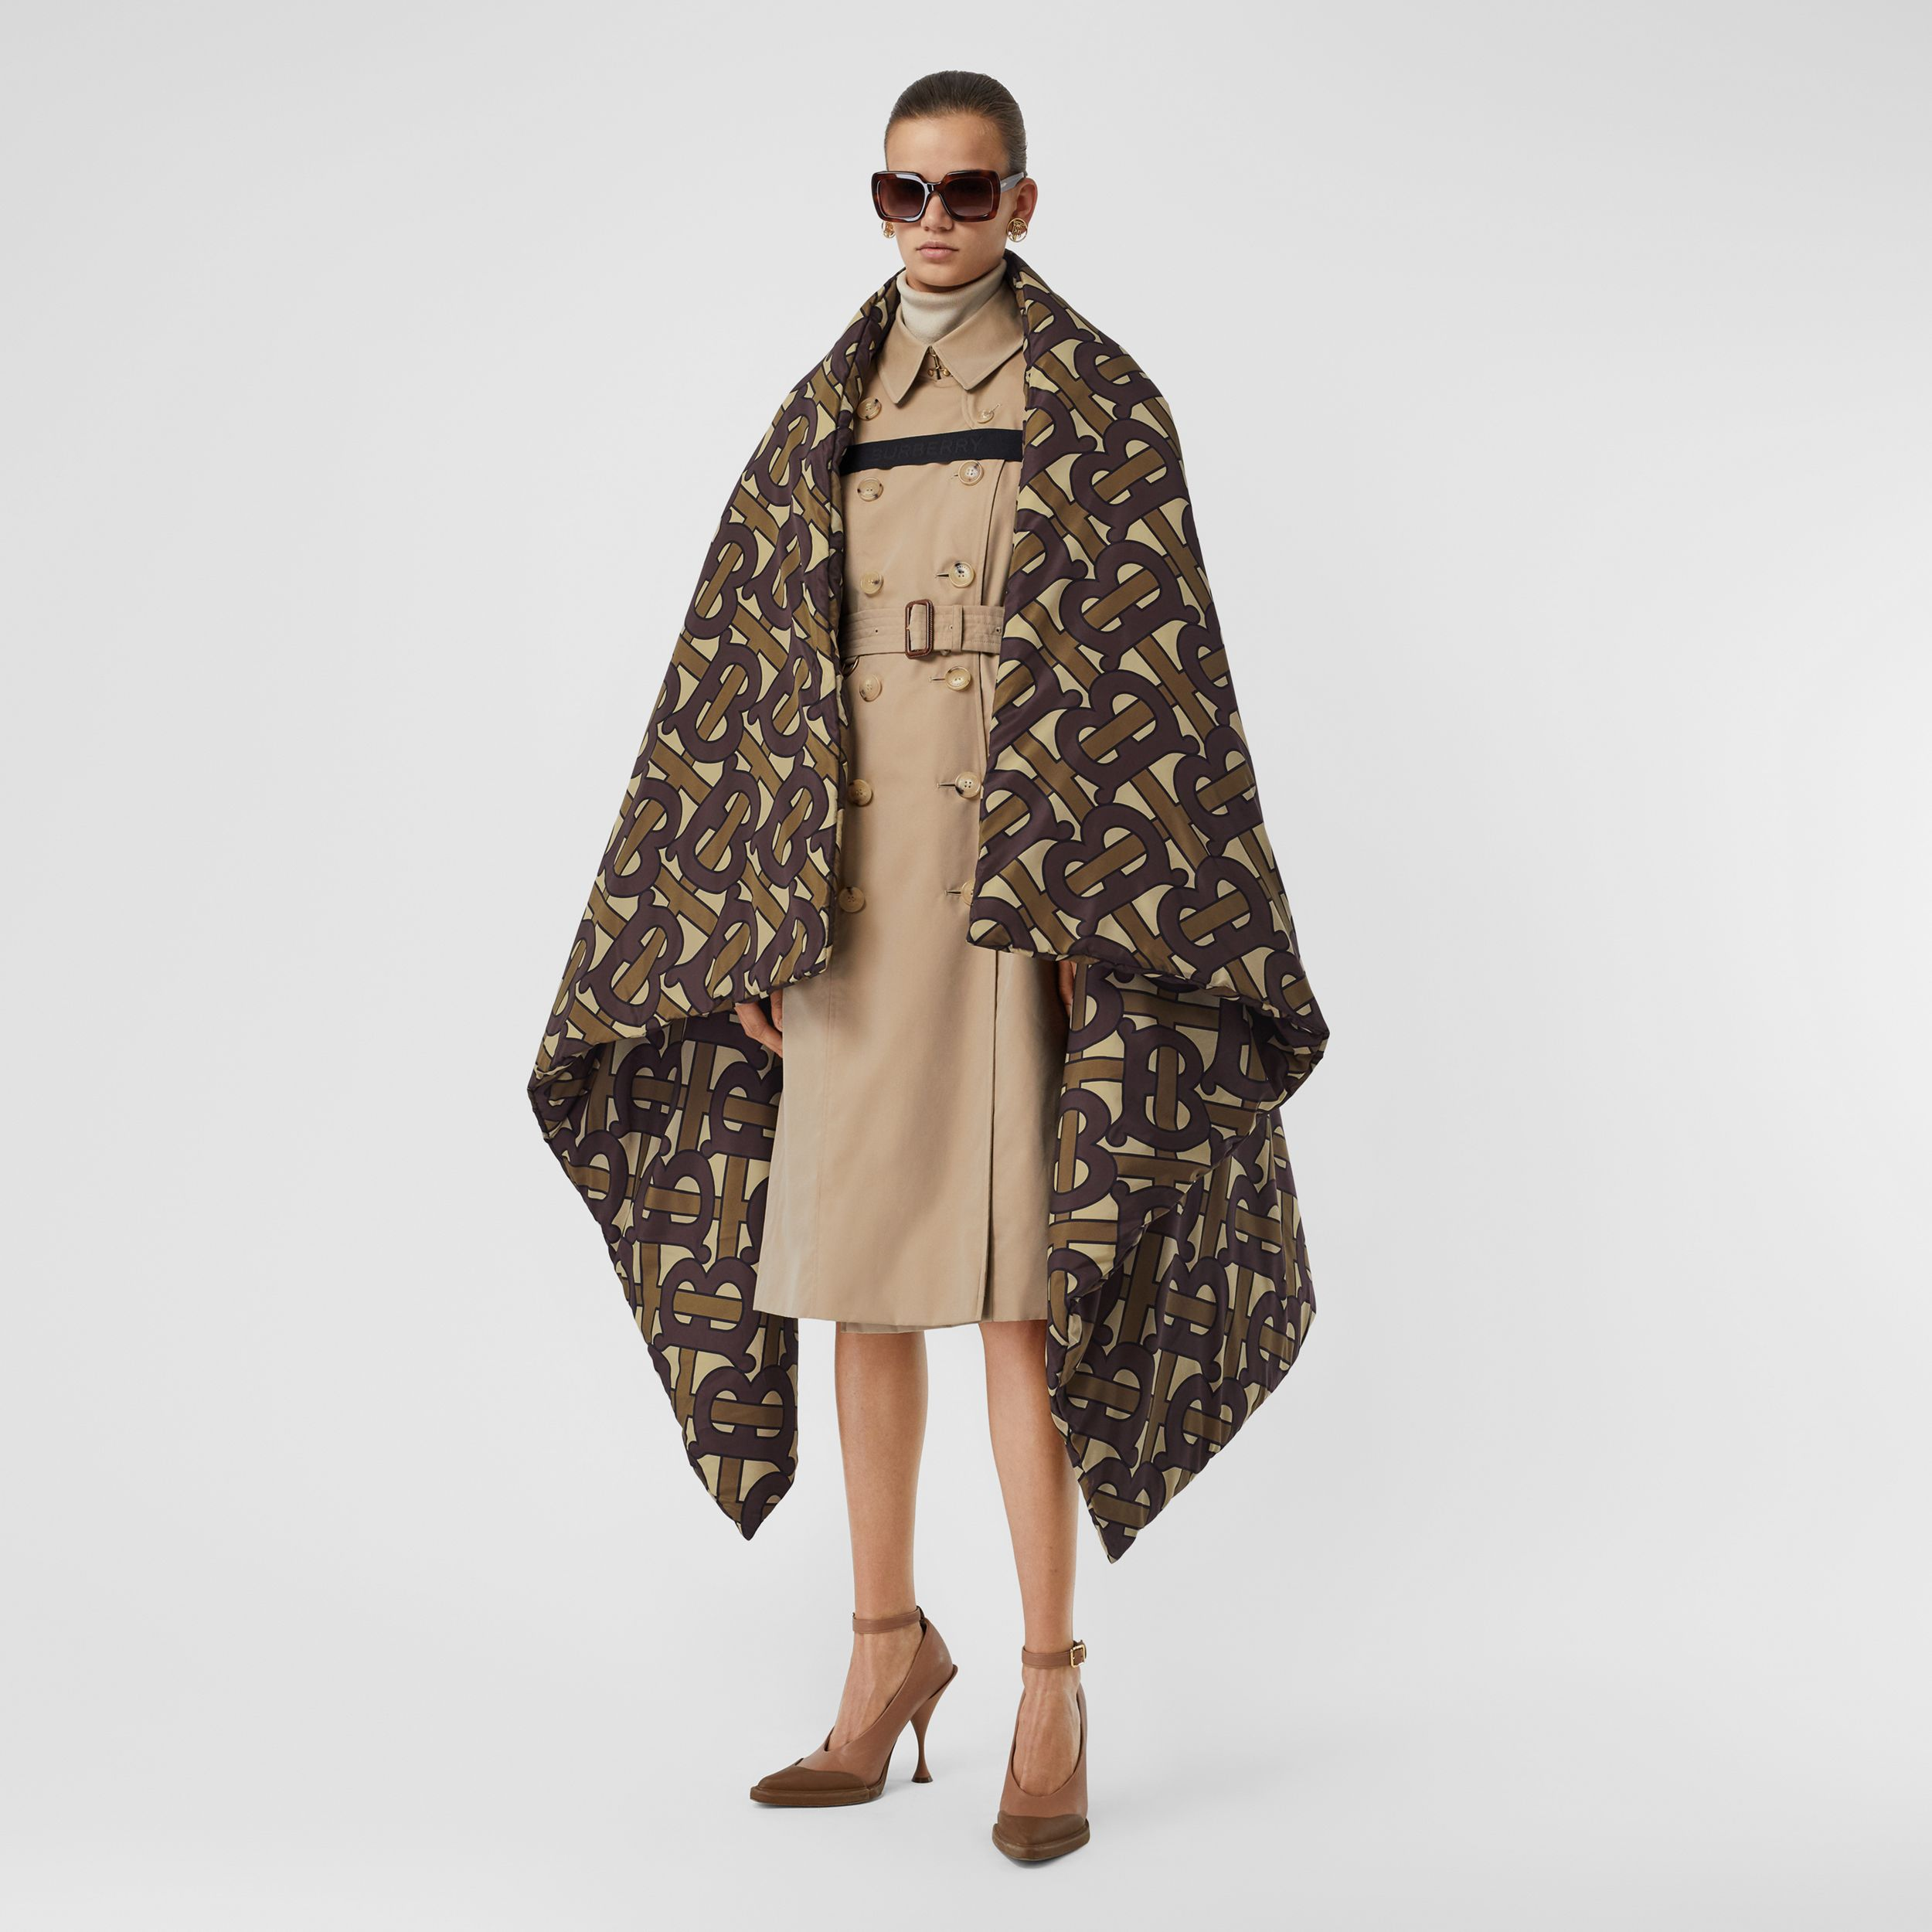 Monogram Print Oversized Puffer Cape in Bridle Brown | Burberry Australia - 1